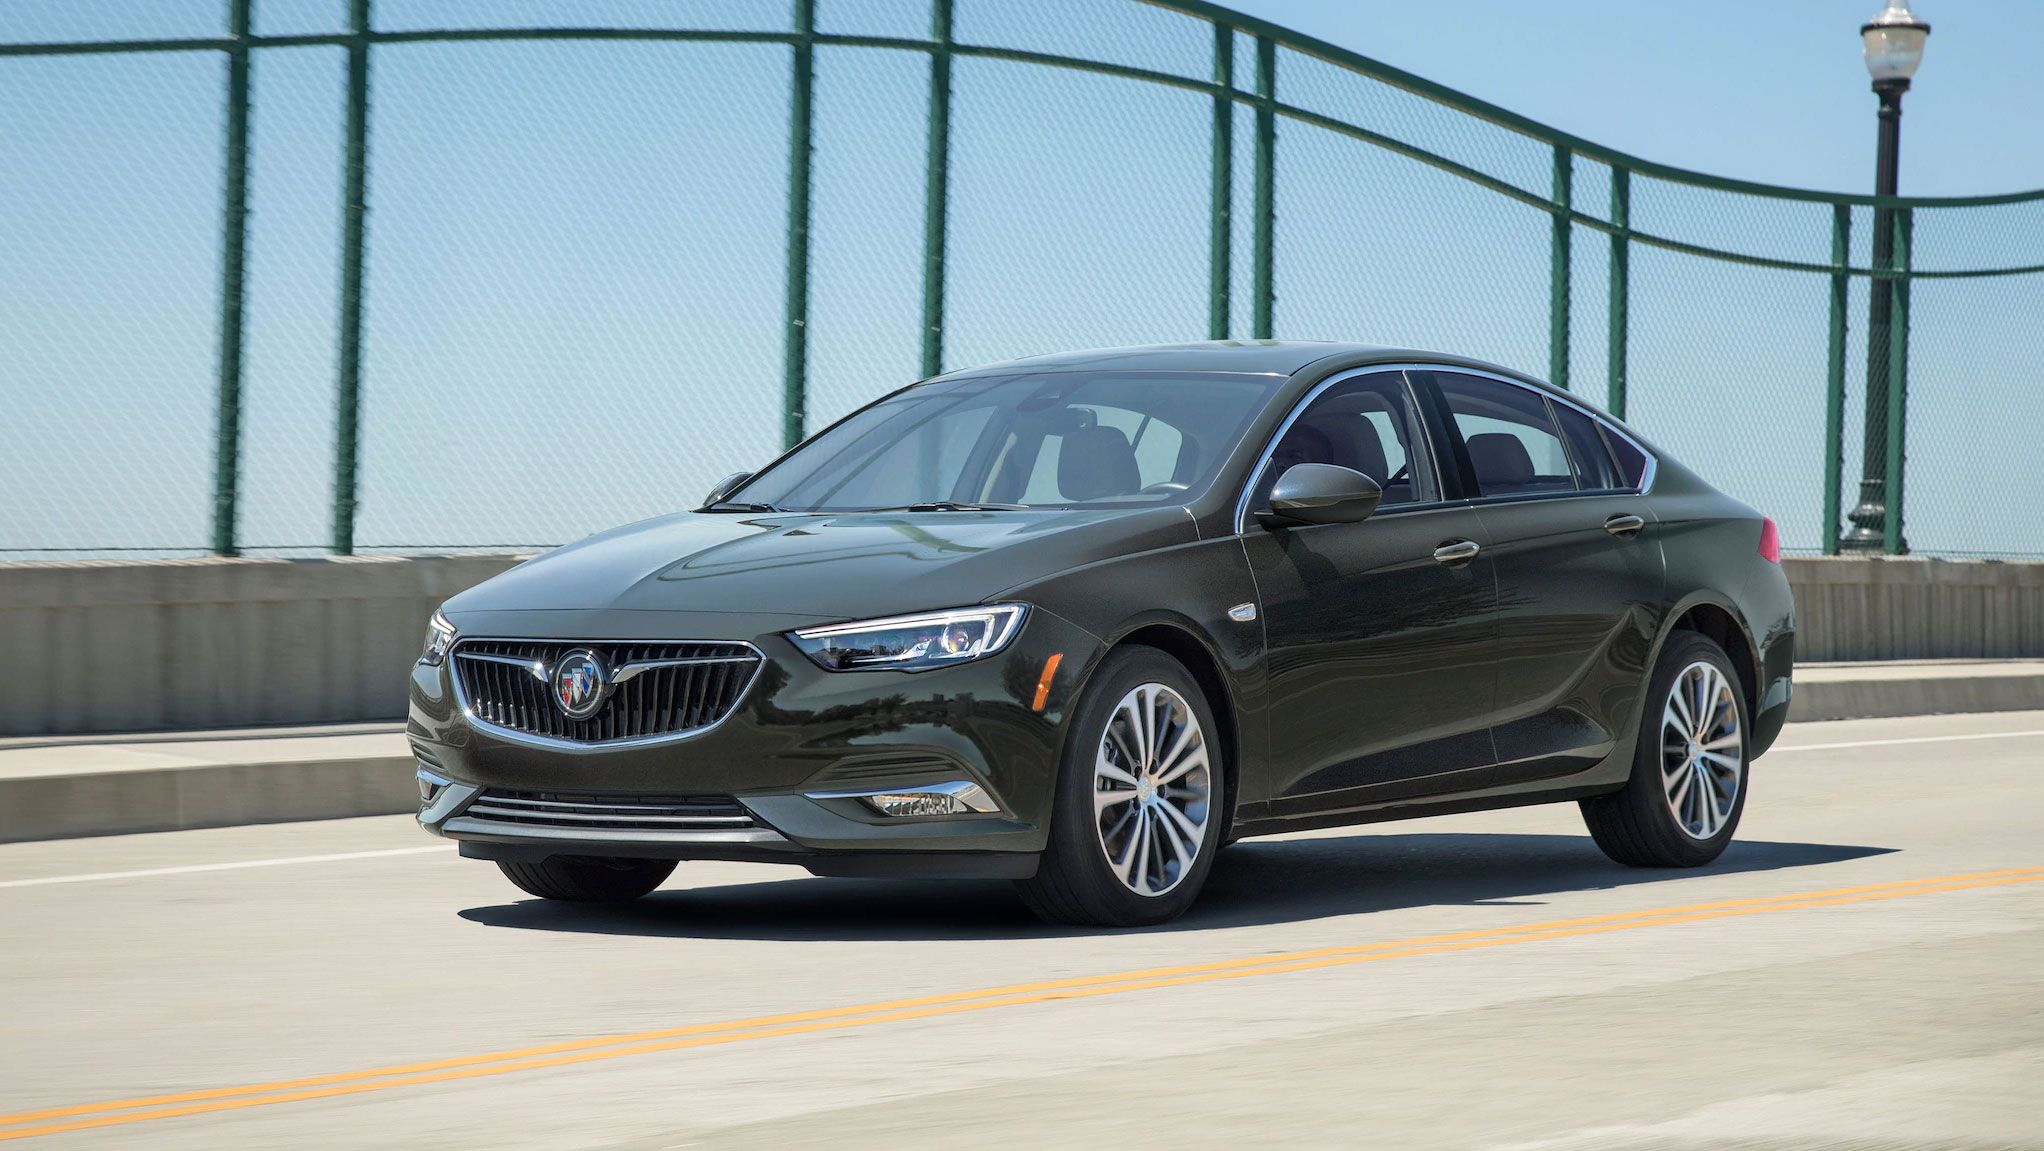 2020 Buick Regal Sportback Review, Pricing, And Specs 2021 Buick Regal Sportback Review, Price, 0-60